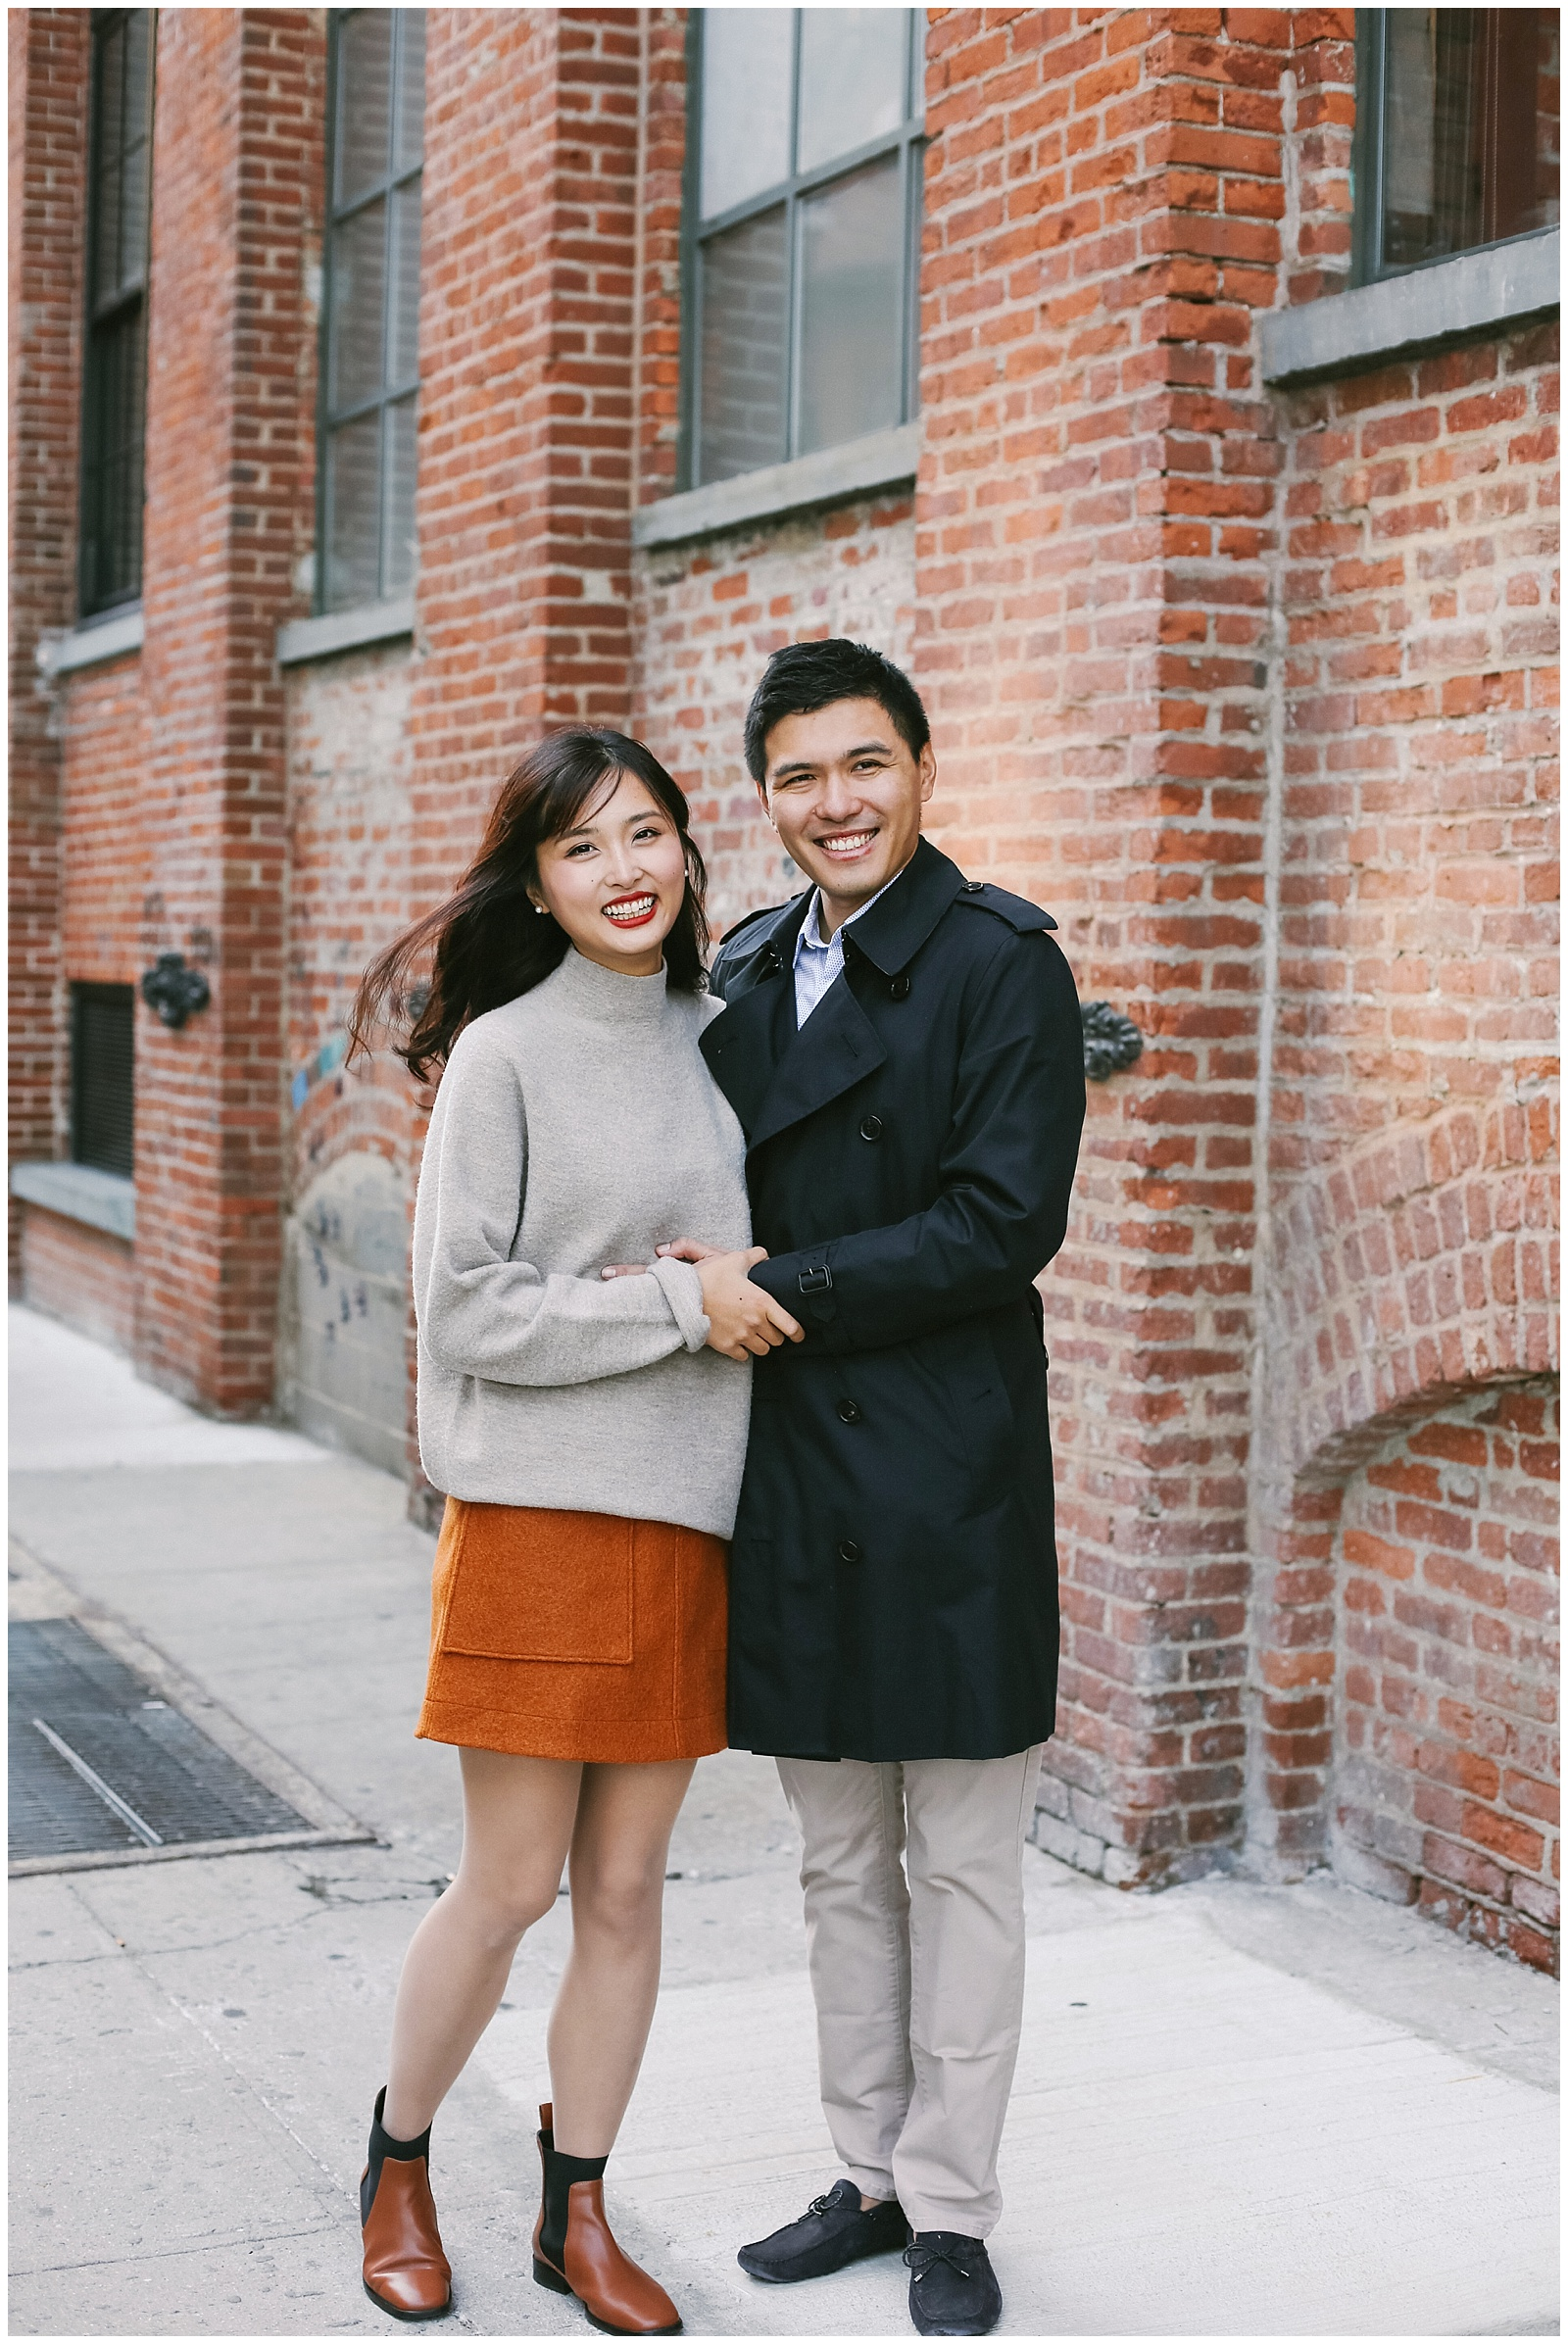 NYC engagement photographer photographs couple in Brooklyn DUMBO on Water Street